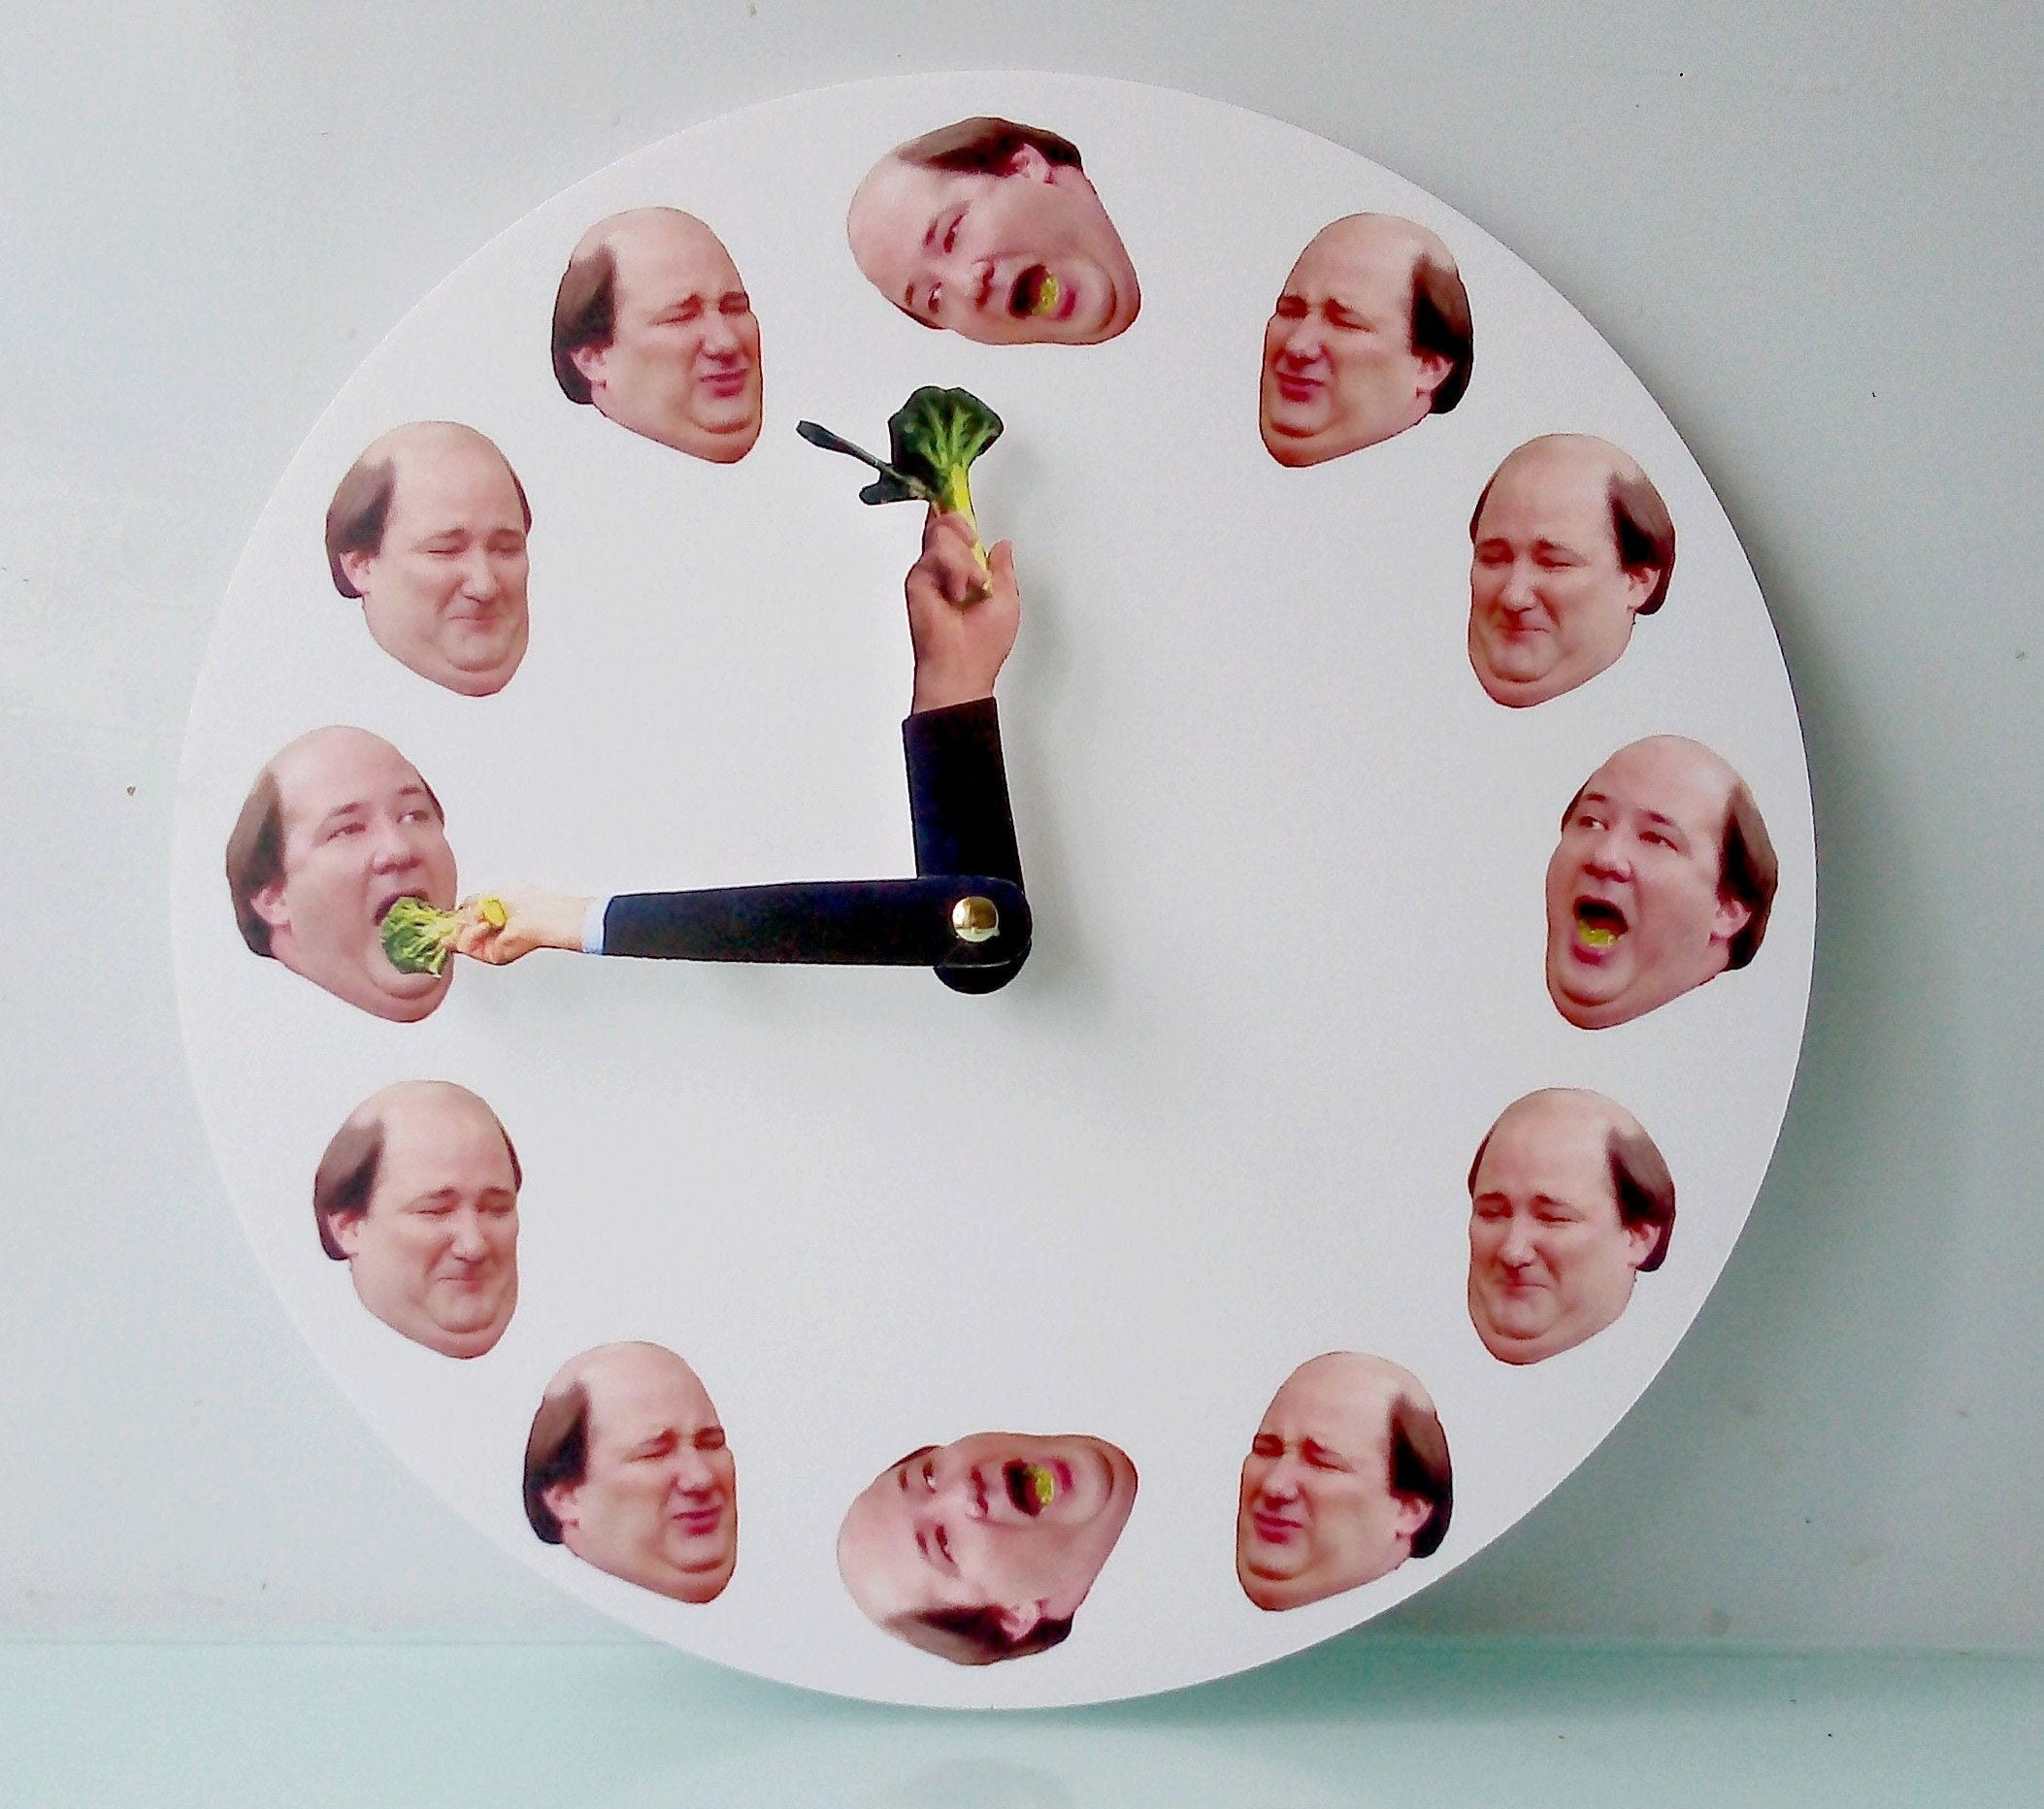 clock with pictures of heads of kevin malone with two clock arms holding broccoli